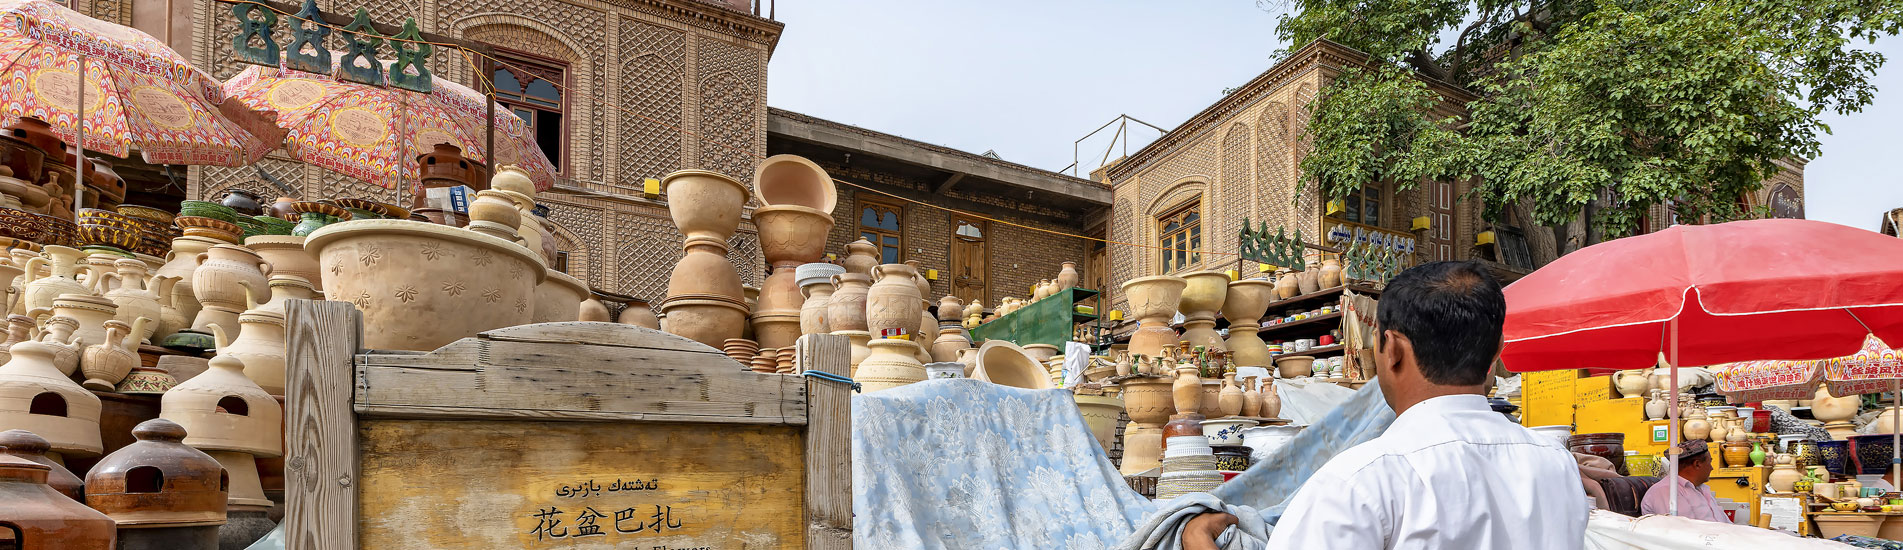 Kashgar Old City Market